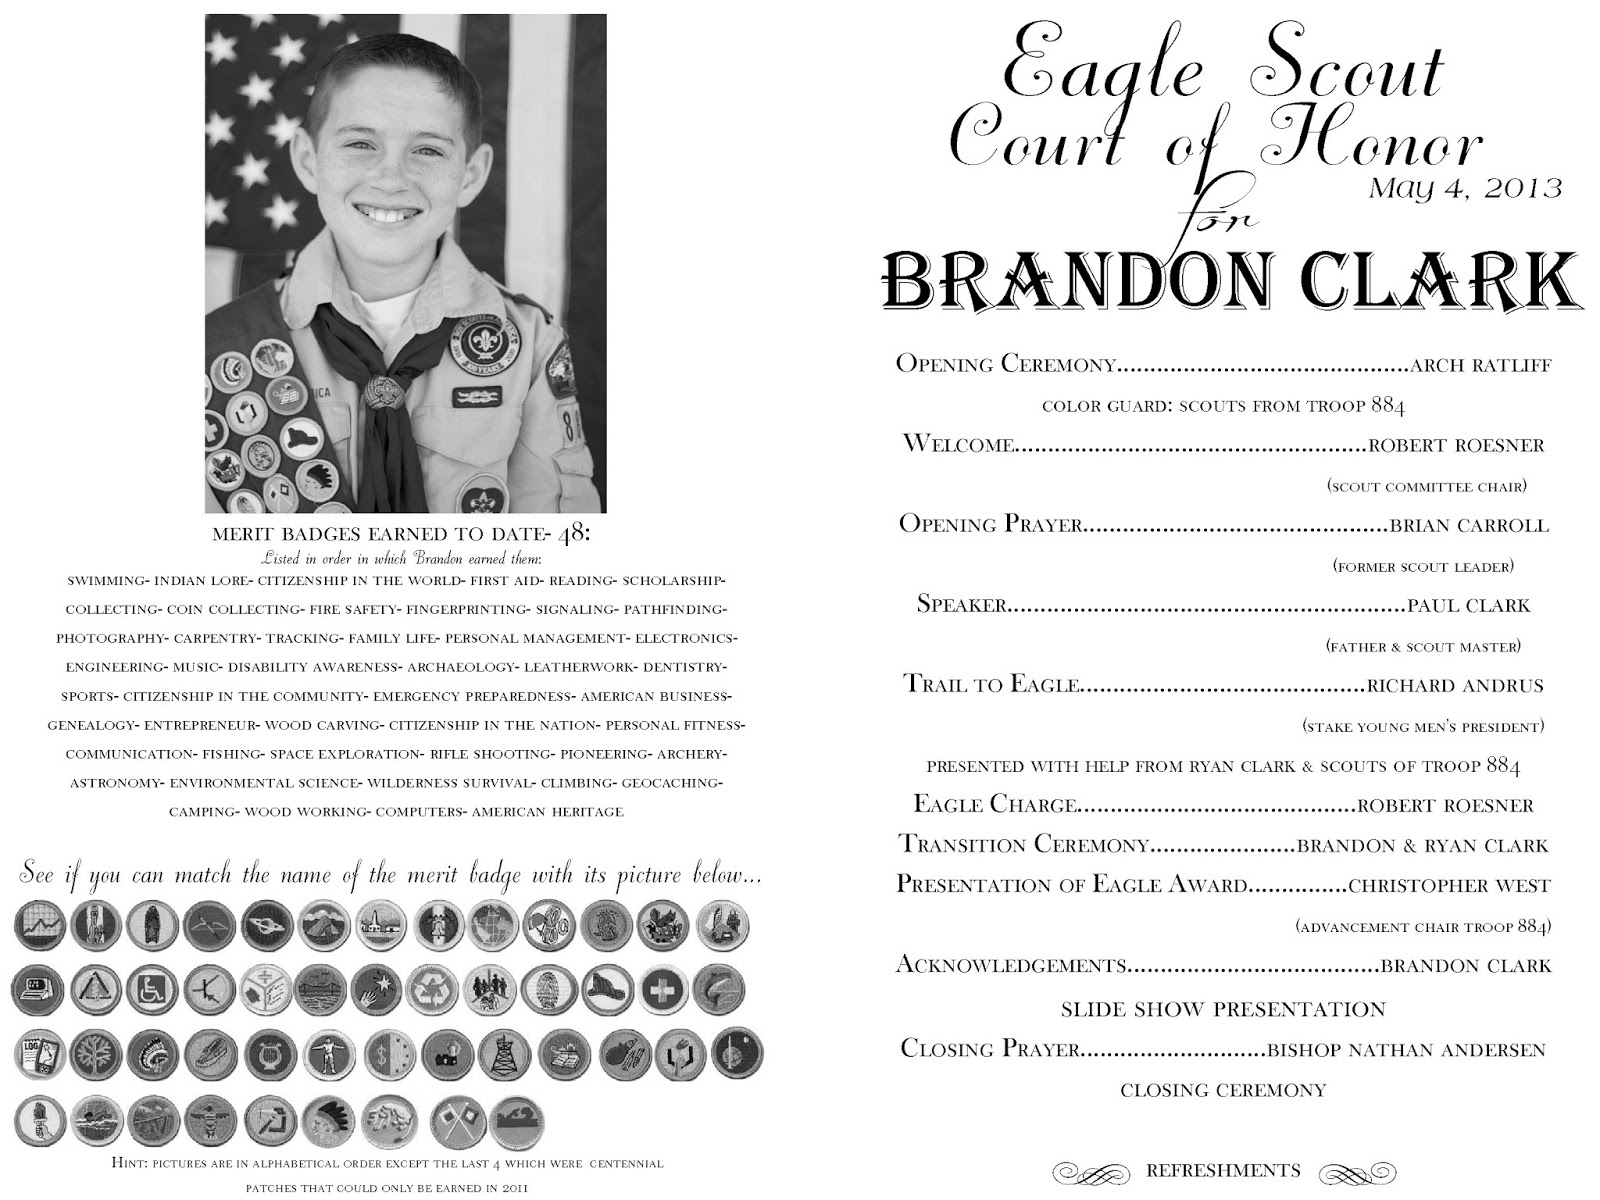 eagle scout court of honor program template - eagle court of honor the program the red balloon